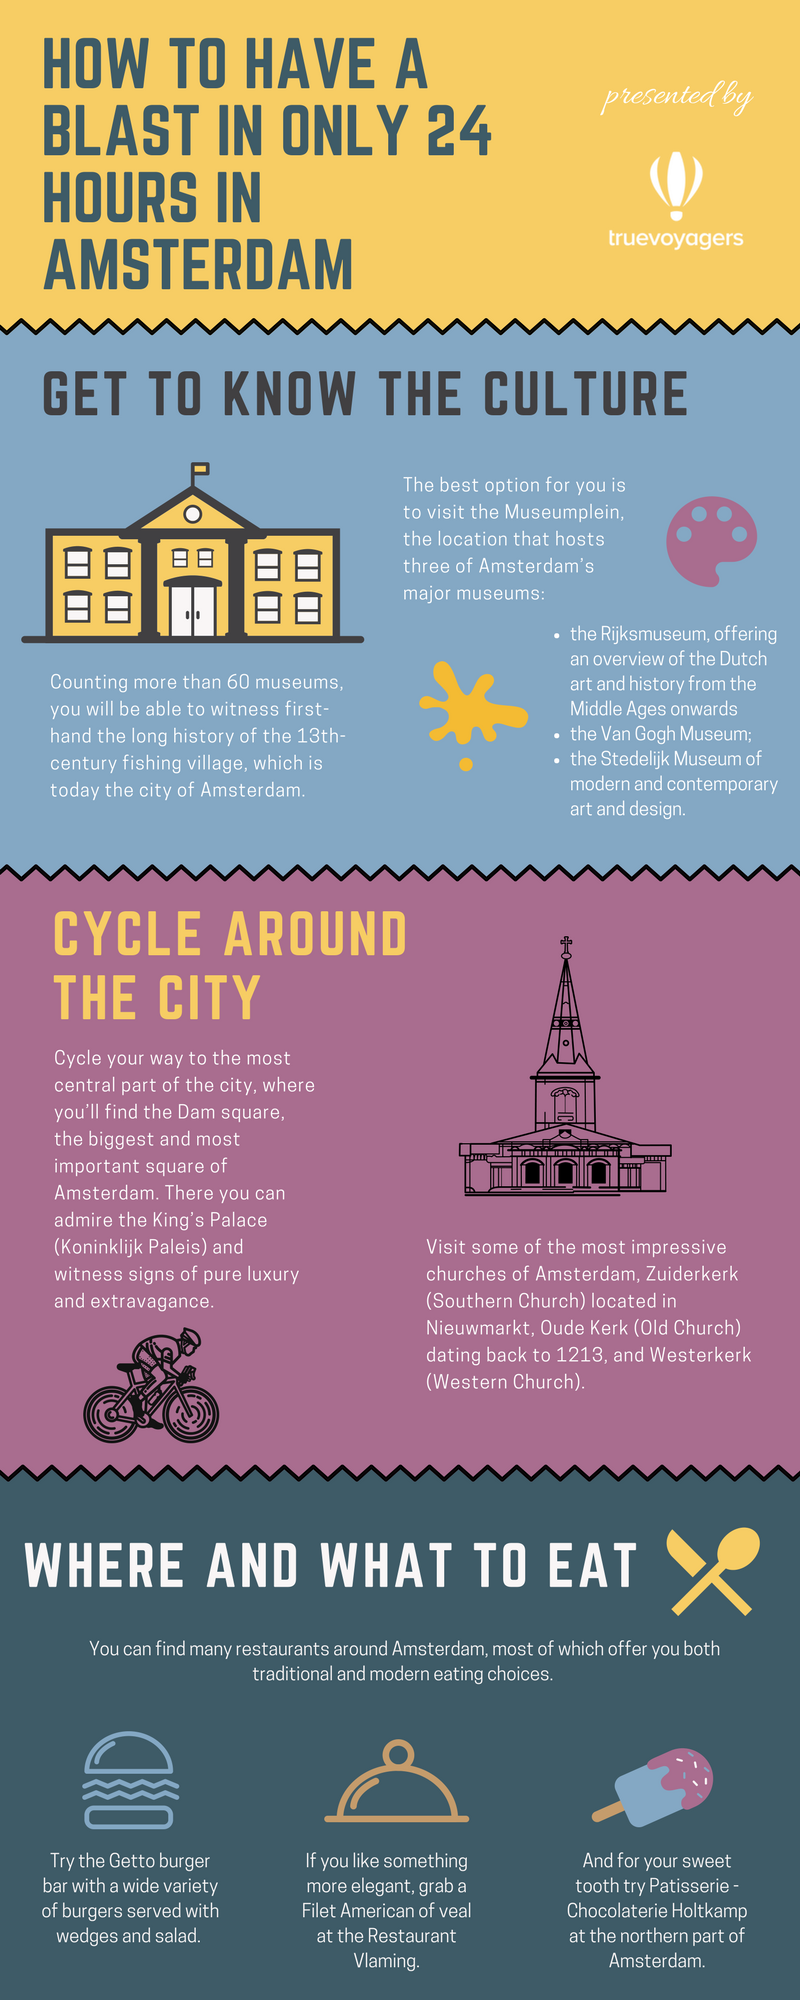 How to have a blast in 24 hours in Amsterdam - infographic by Truevoyagers